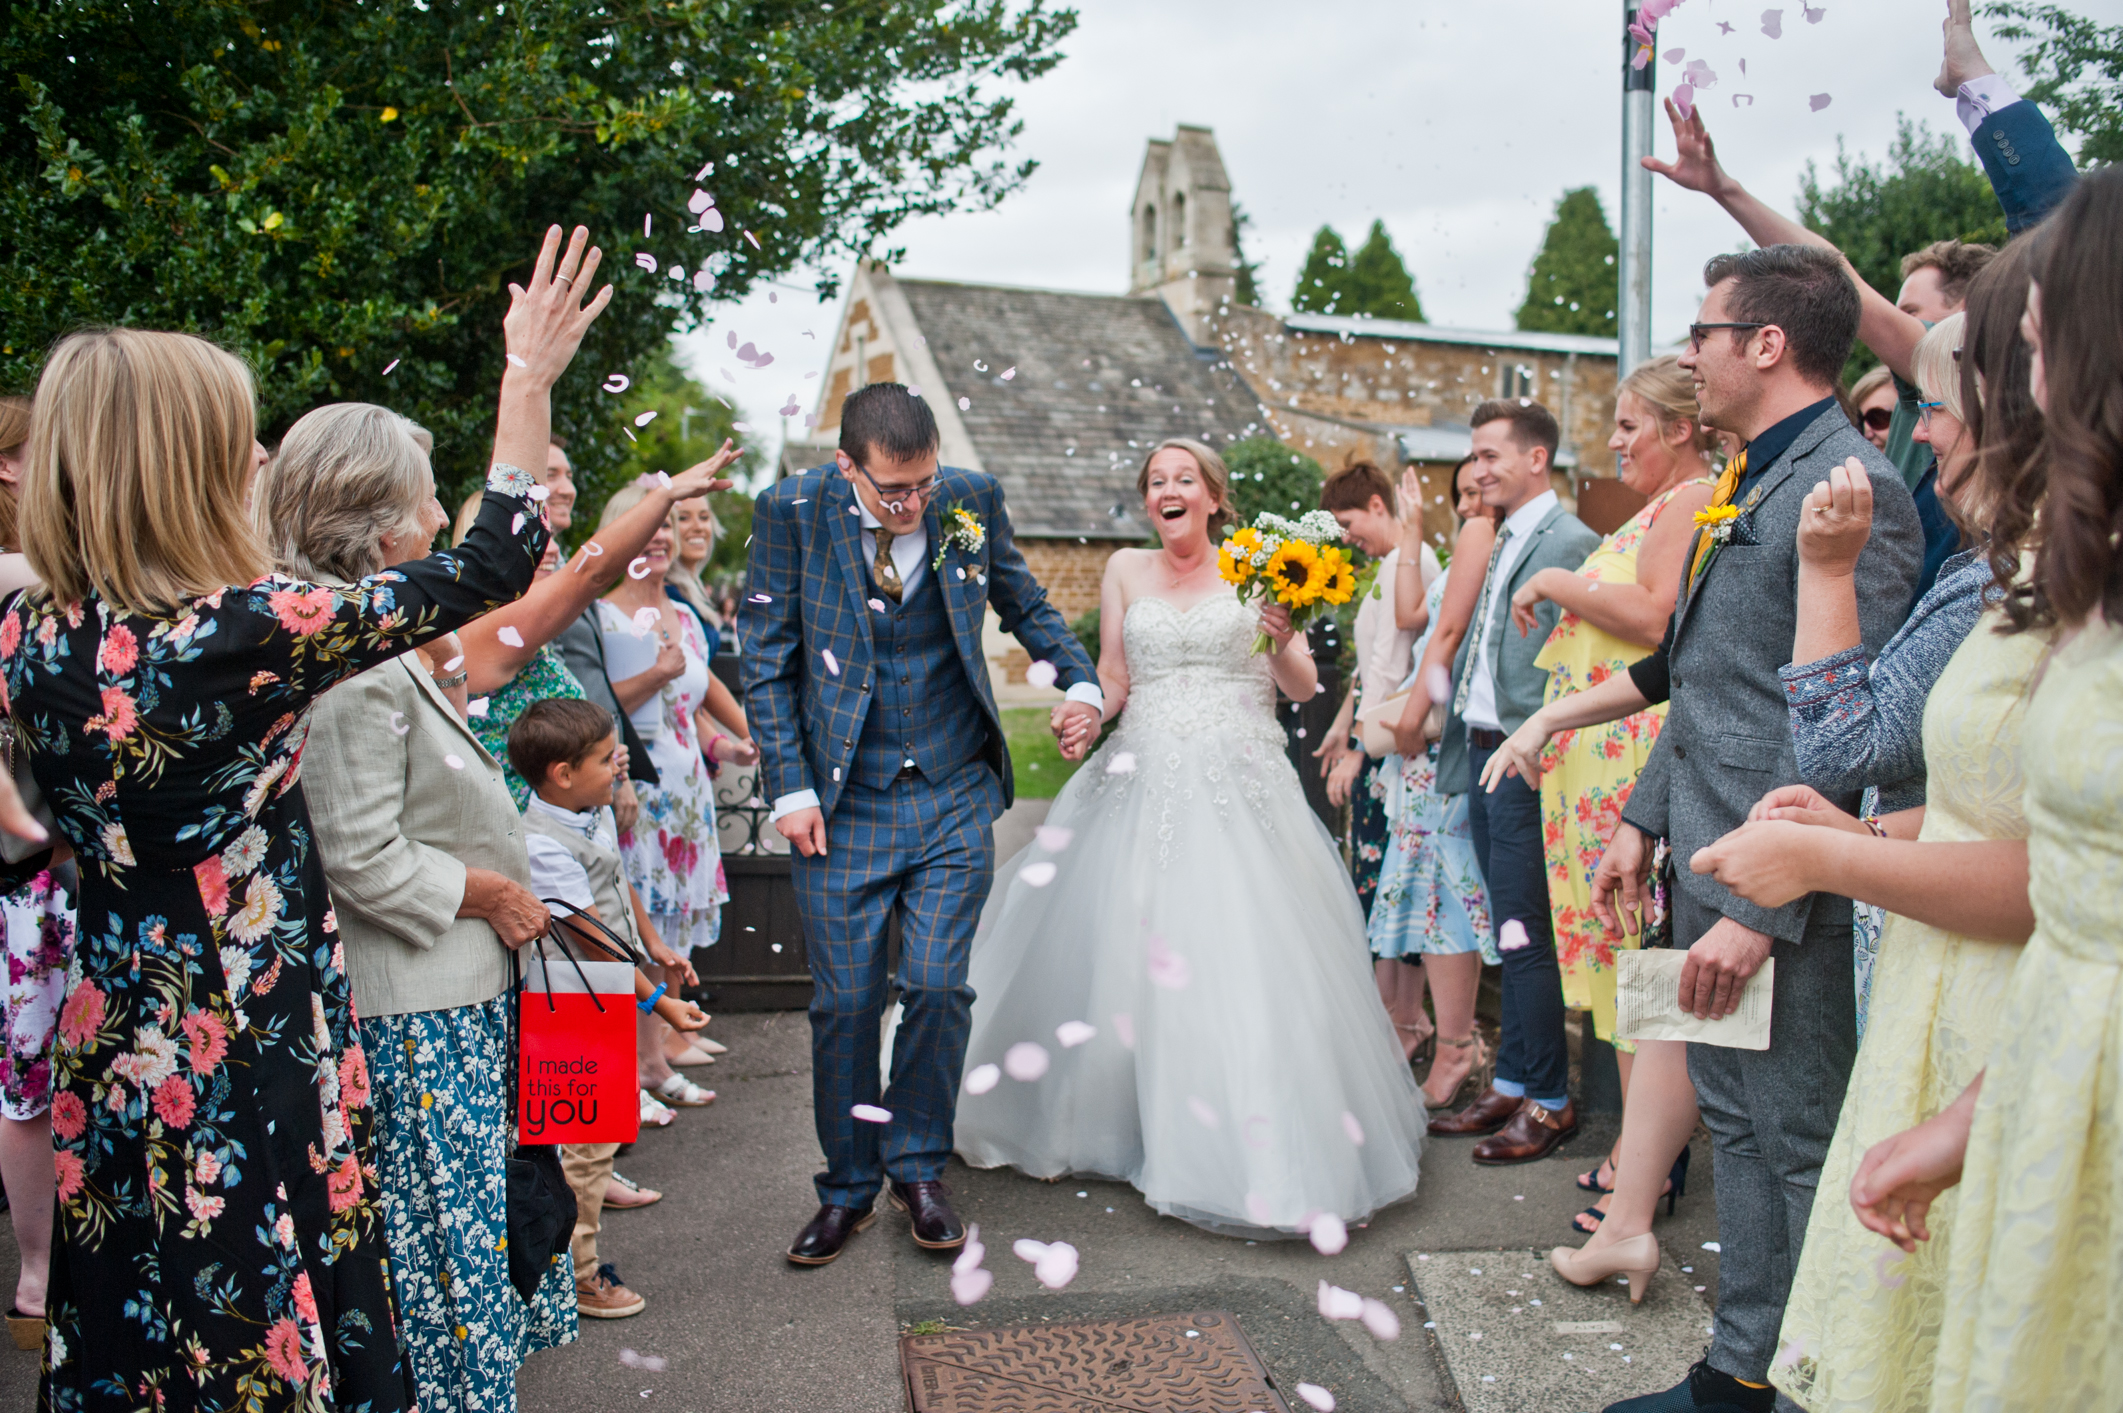 Confetti Shot! A highlight of the day ( photography wise anyway ) and a great chance to catch reaction shots.